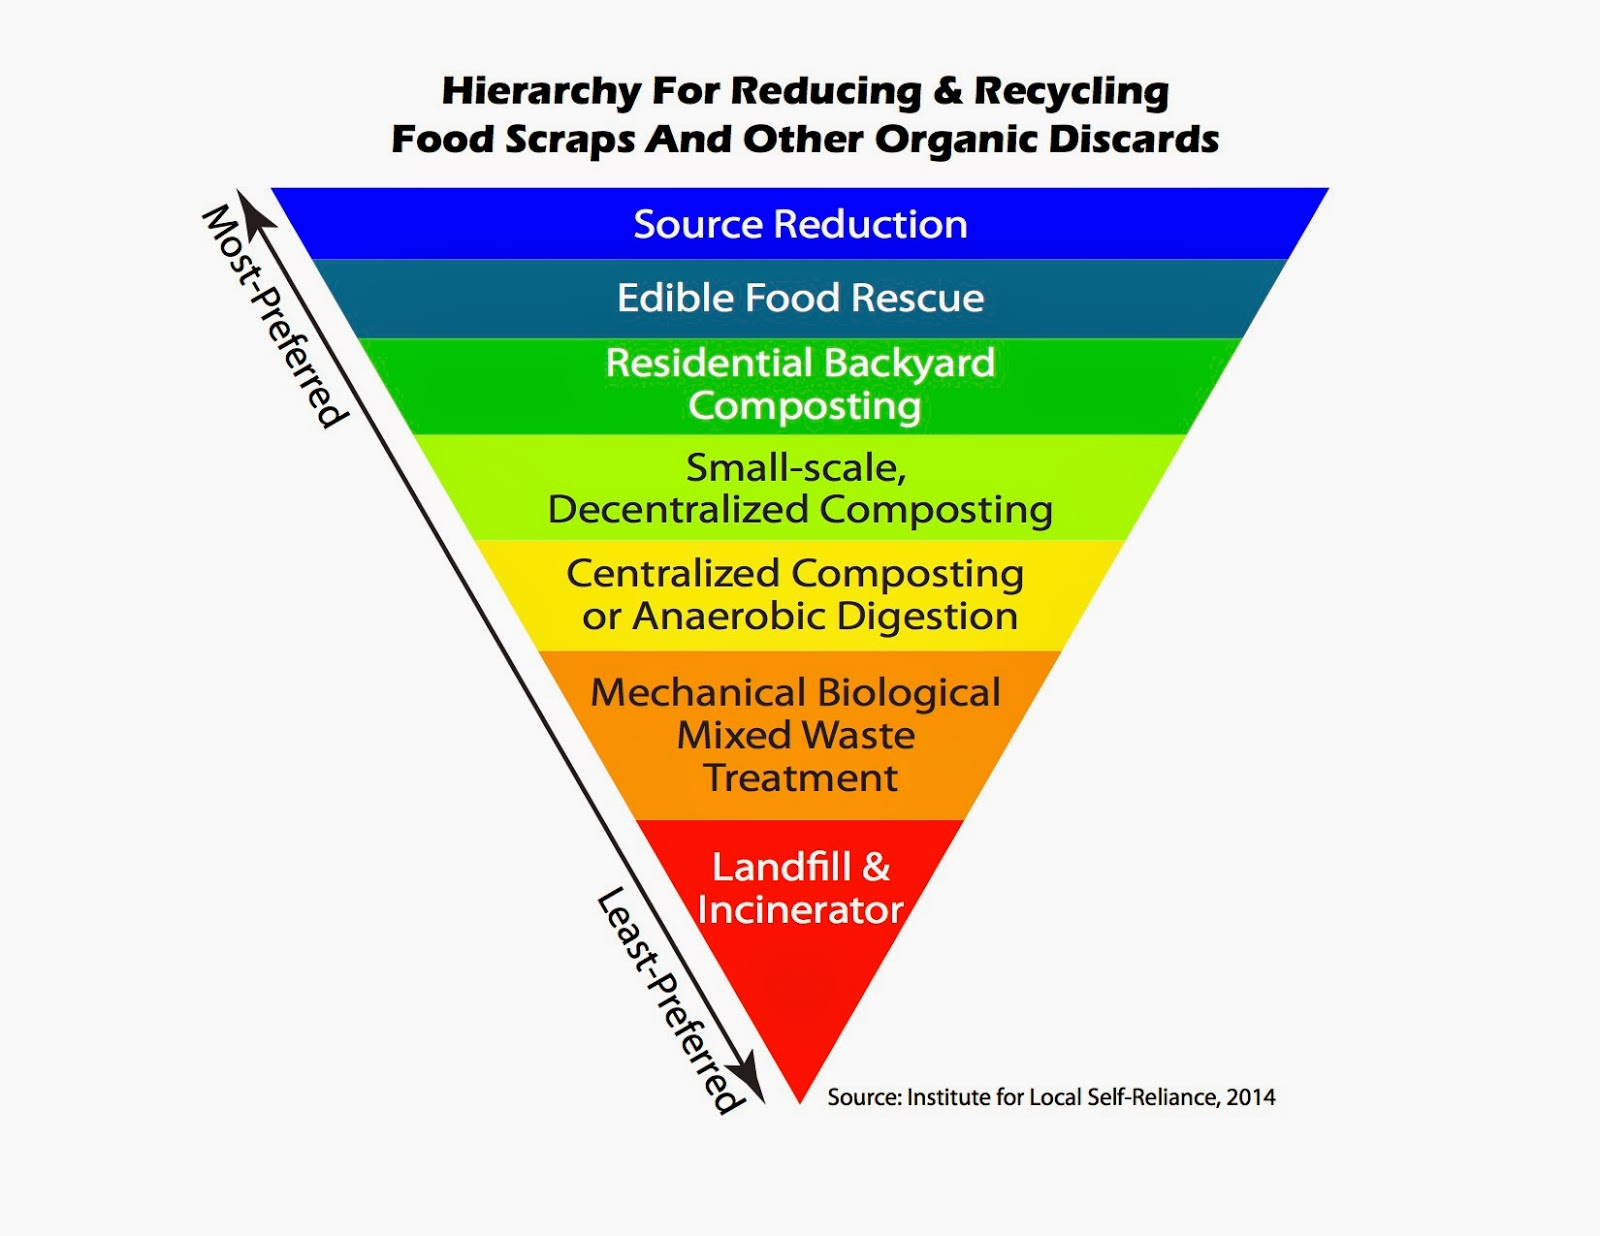 relationship management is a waste of The relationship between household waste performance and socio-demographic characteristics andrew quinn1 and ian nivison-smith2 abstract it is a widely held belief in the waste management field that there is a relationship between.